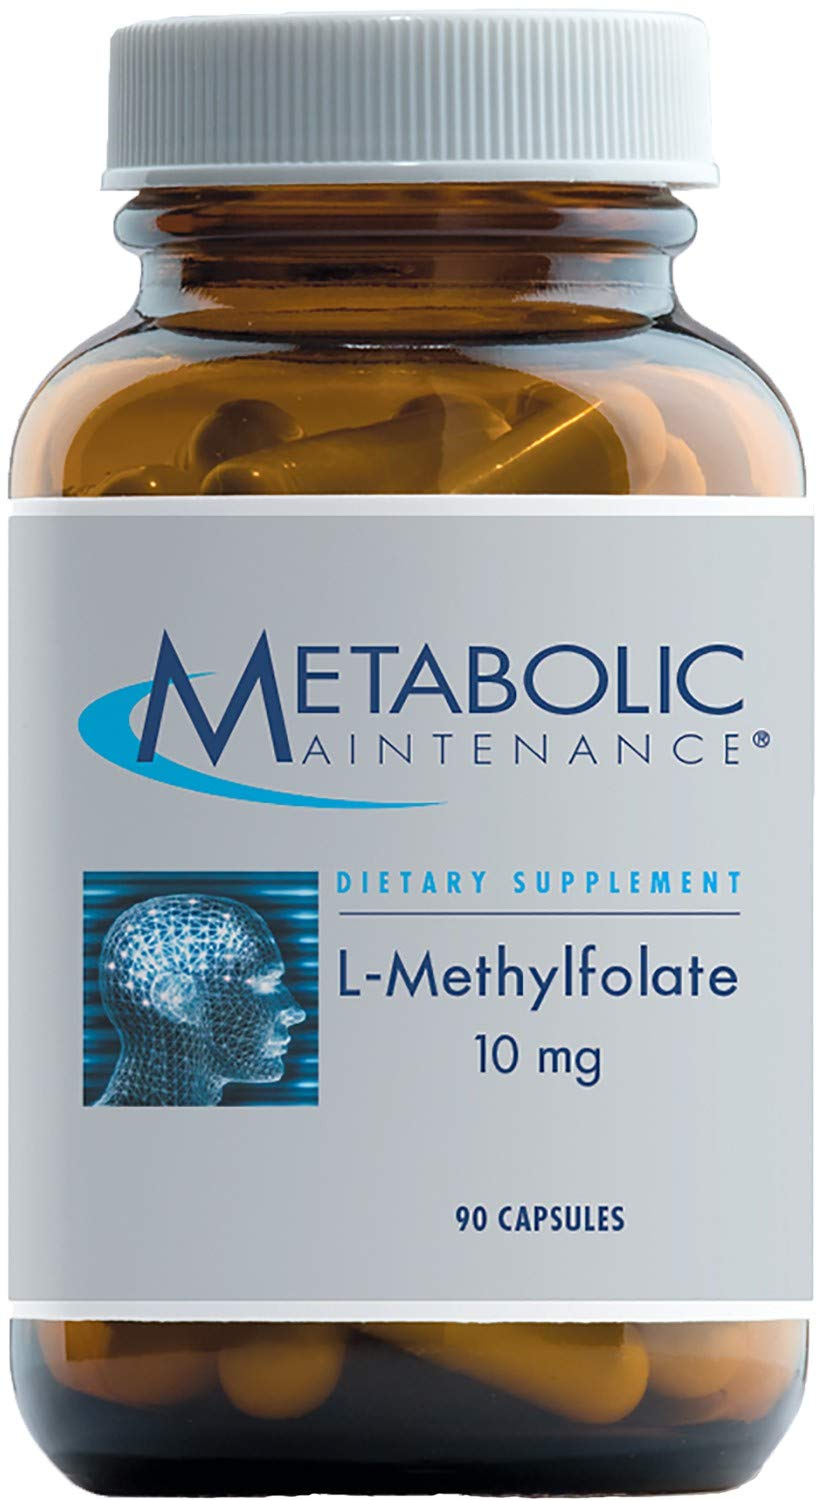 Metabolic Maintenance L-Methylfolate 10 mg - Active Folate (L-5-MTHF) for Mood, Nerve + Cardiovascular Support (90 Capsules) by Metabolic Maintenance